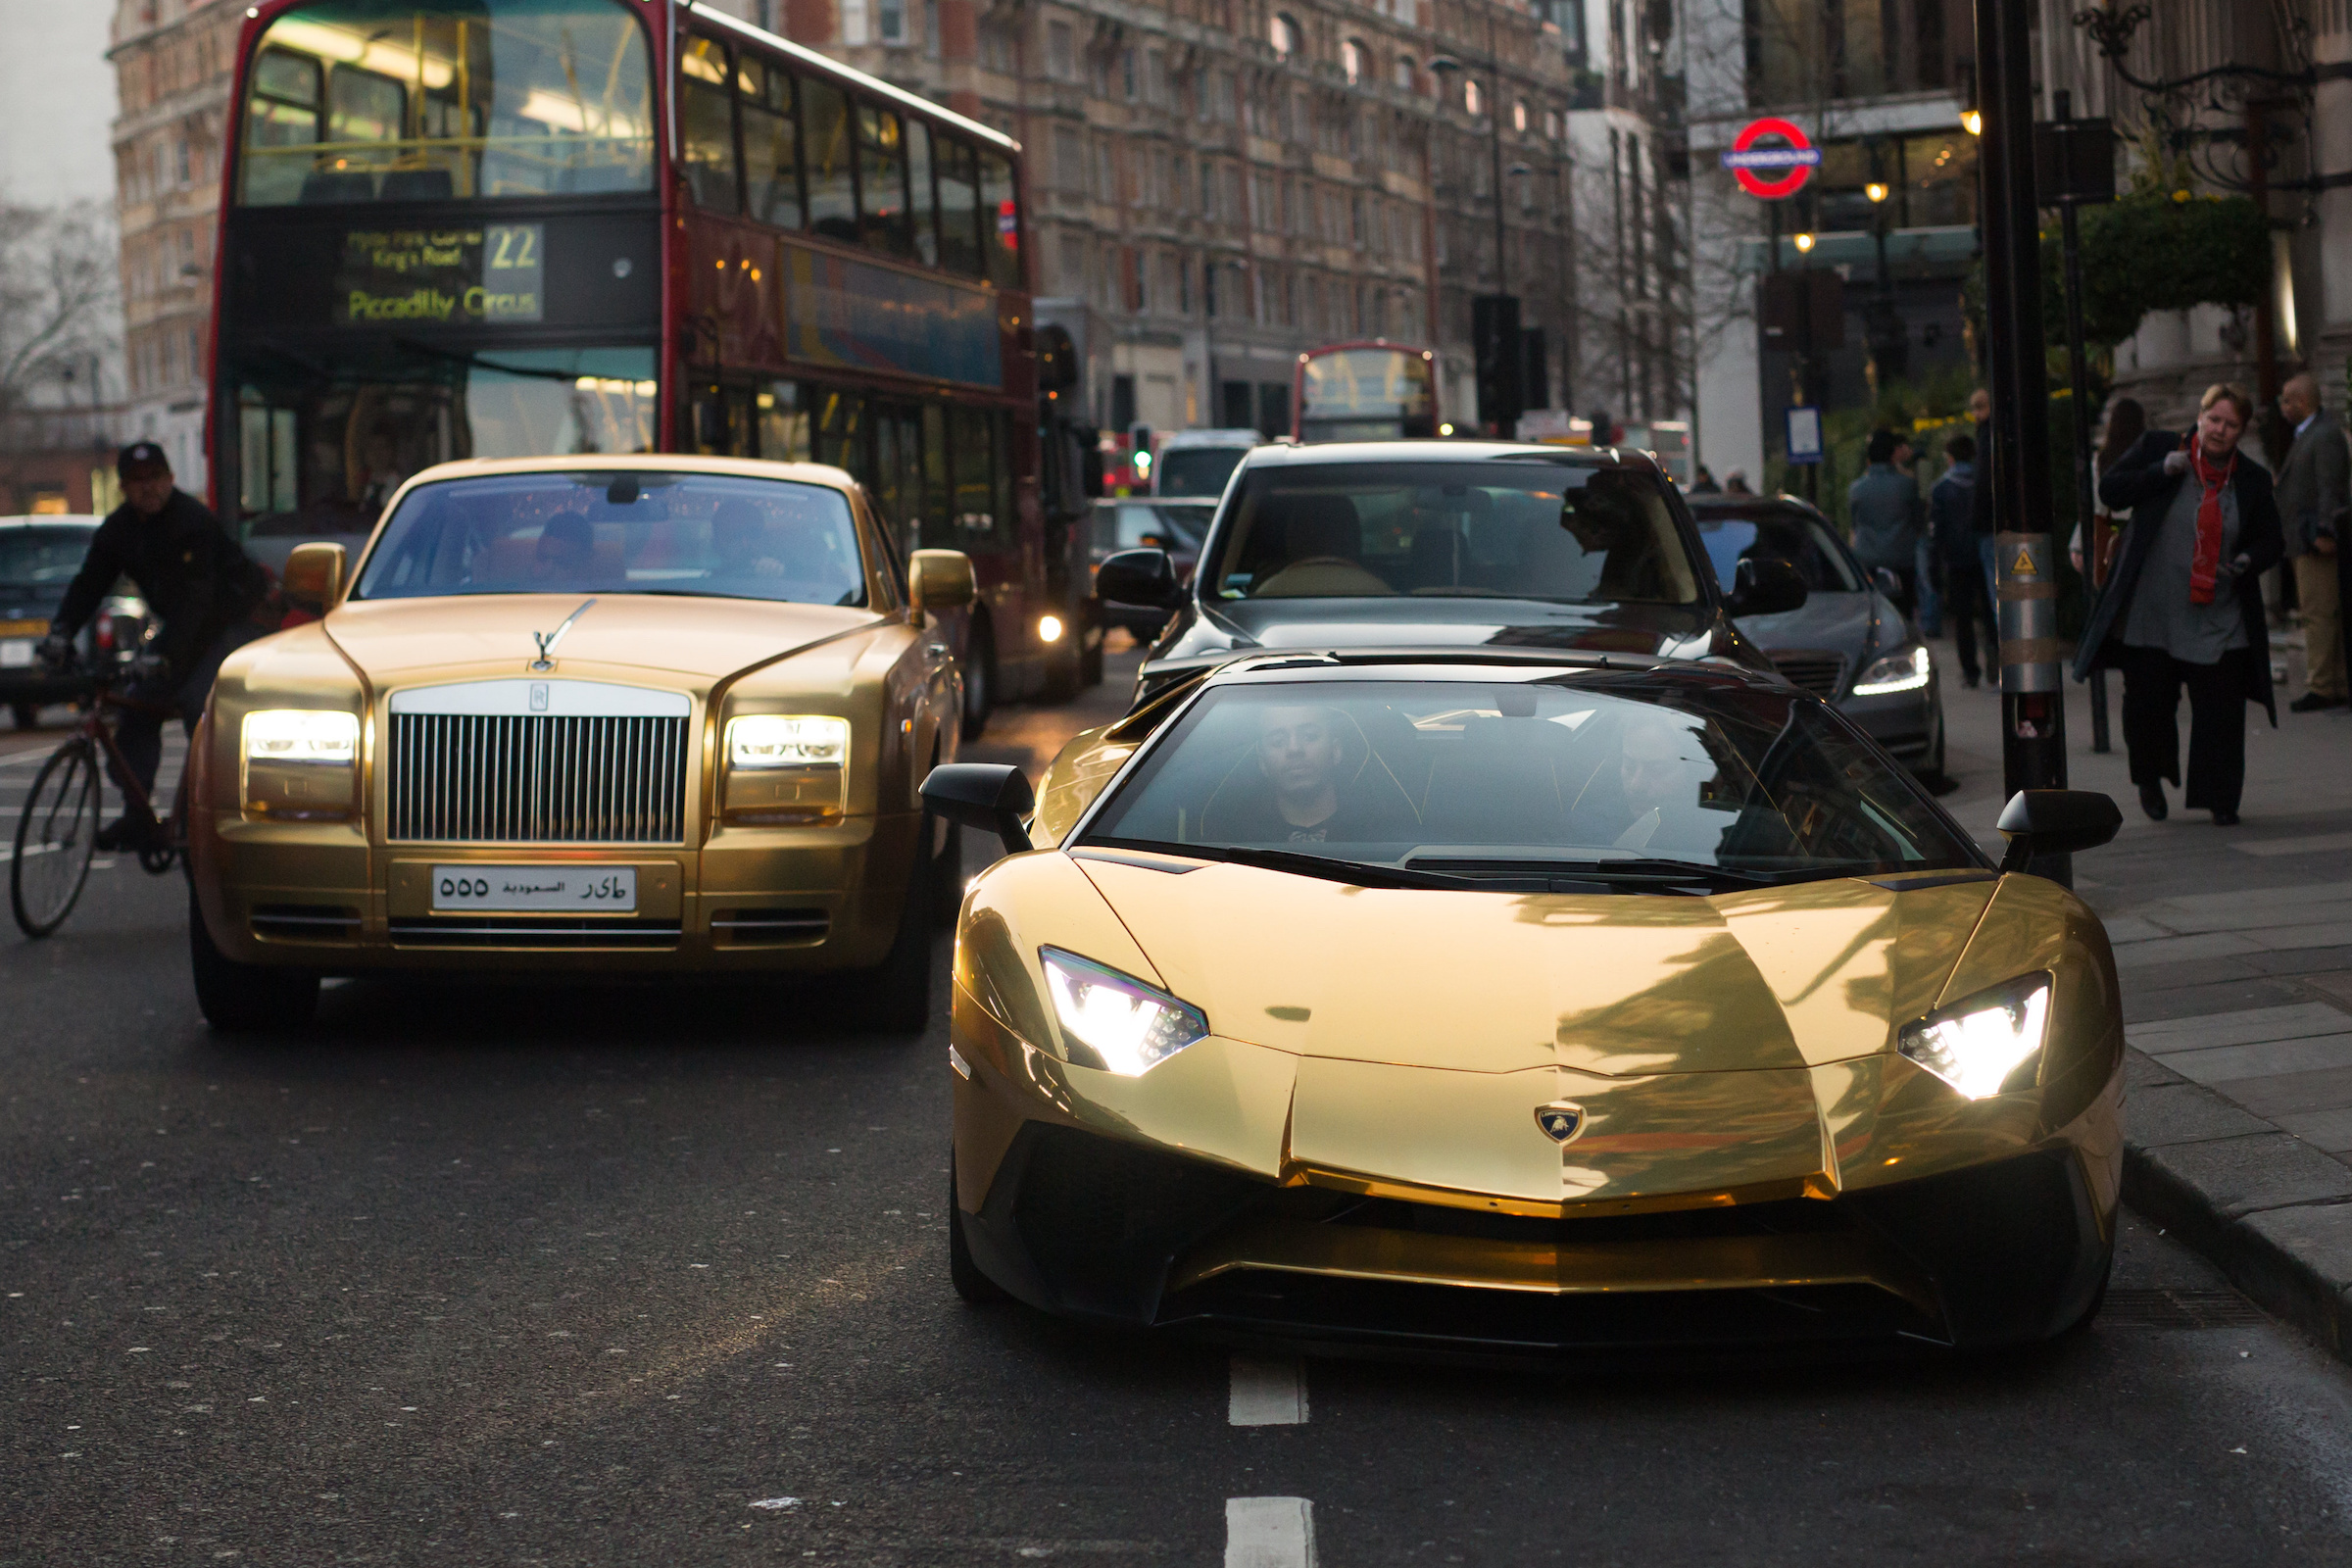 London Supercars